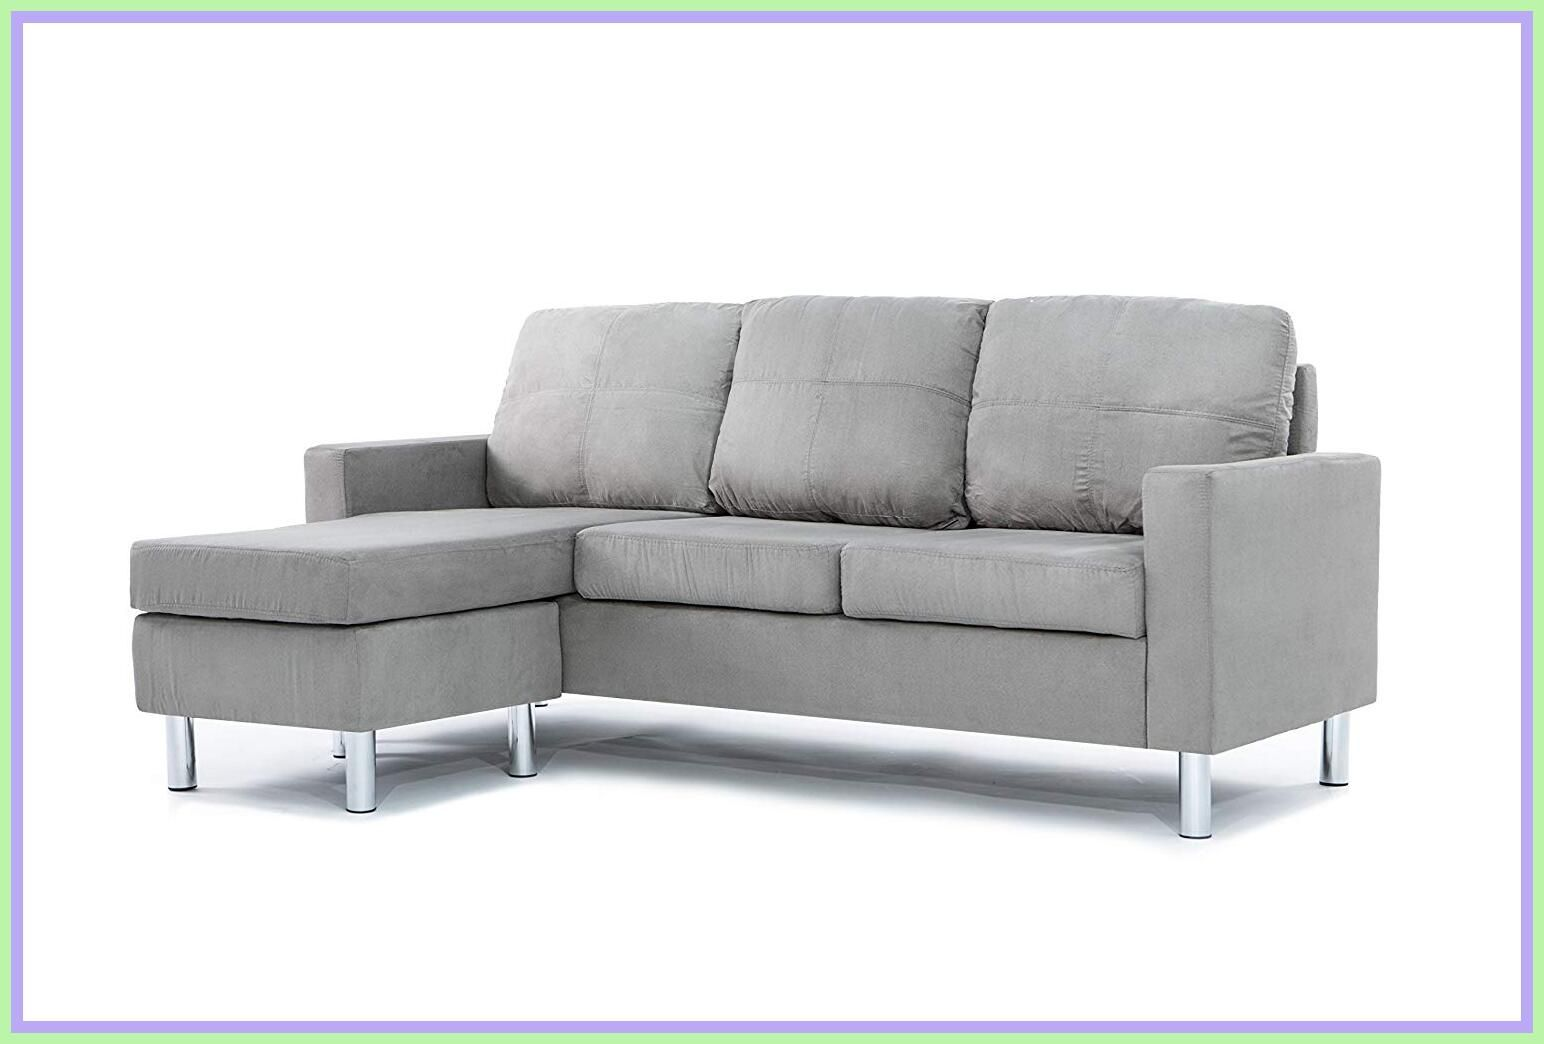 75 Reference Of Honbay Convertible Sectional Sofa Couch L Shaped In 2020 Cheap Sectional Couches Sectional Sofa Couch Microfiber Sectional Sofa